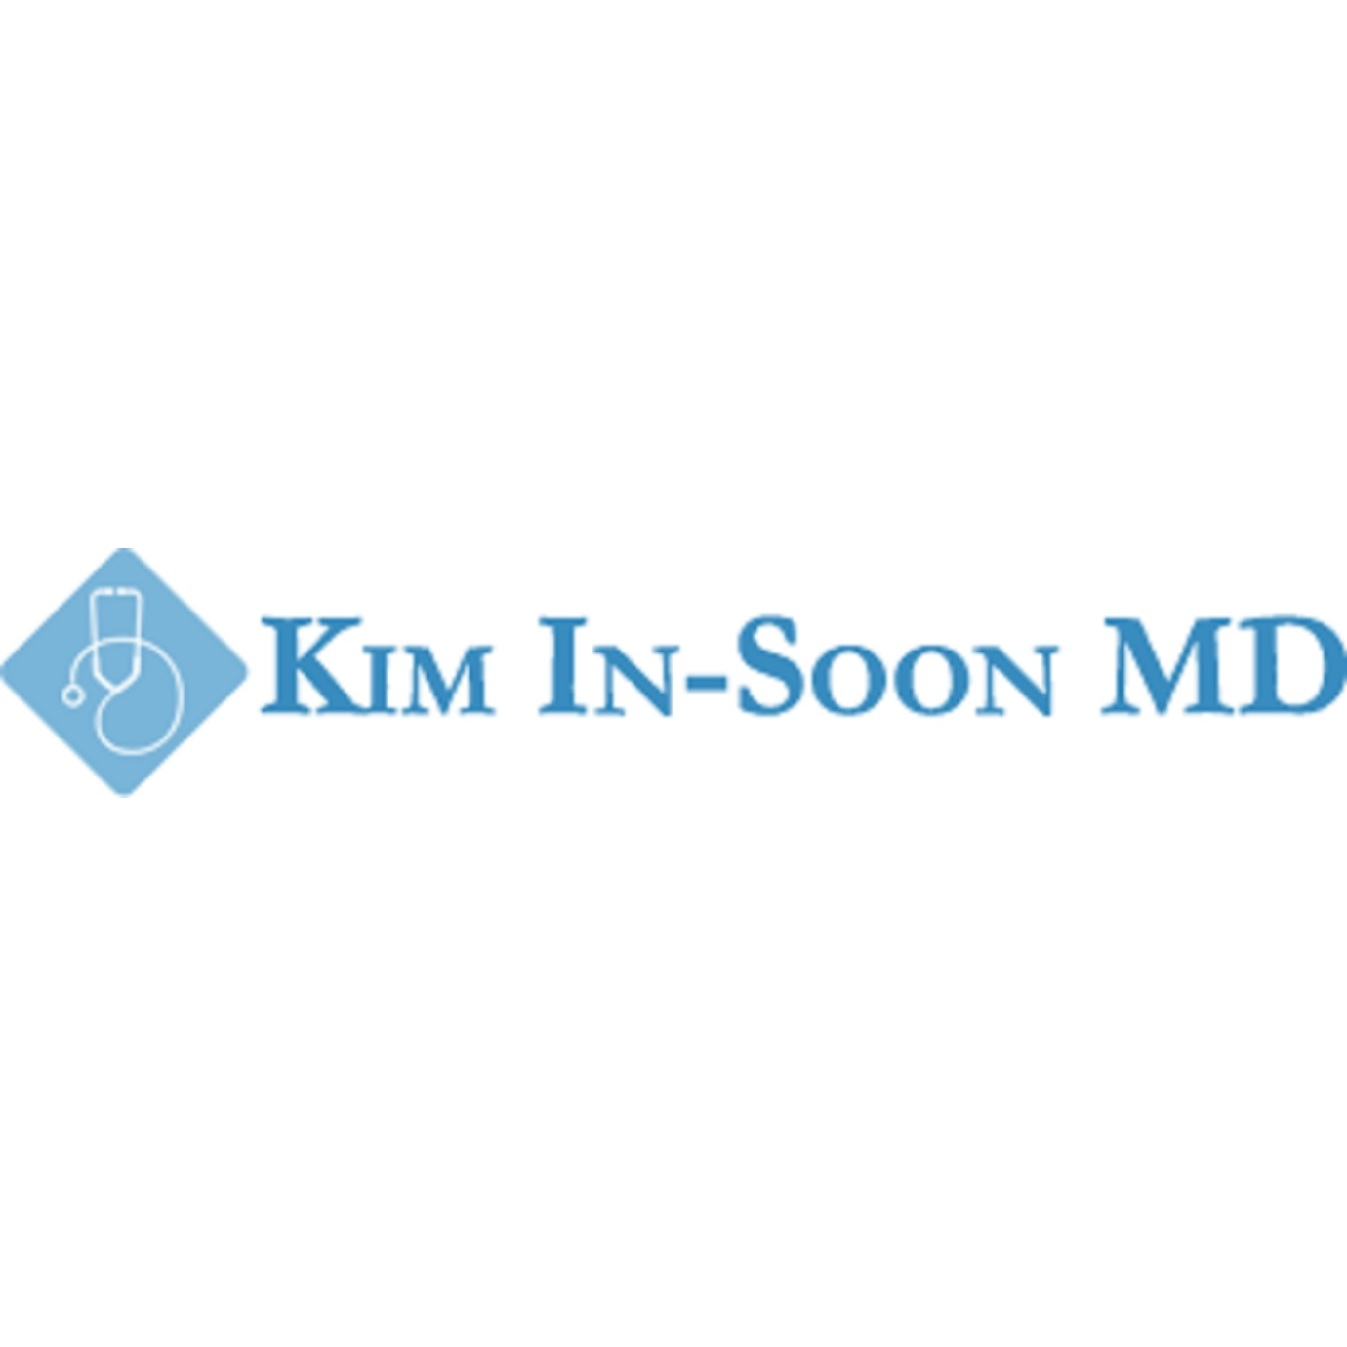 Family Practice Physician: Dr. Kim In-Soon, MD